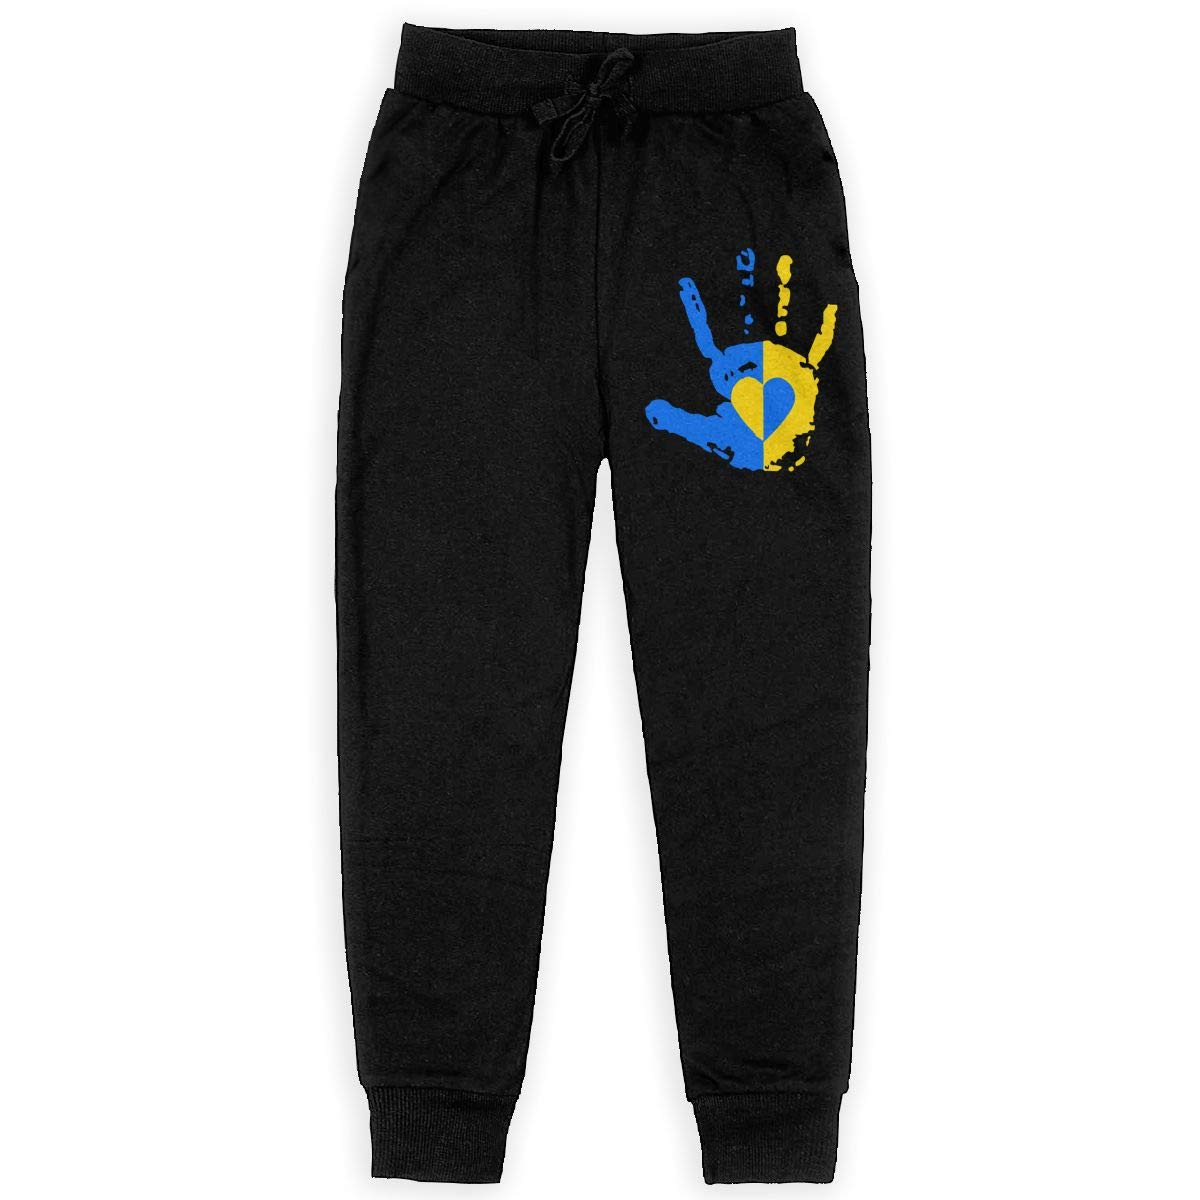 Down Syndrome Awareness Hand Soft//Cozy Sweatpants Teenager Jogger Pants for Teen Boy